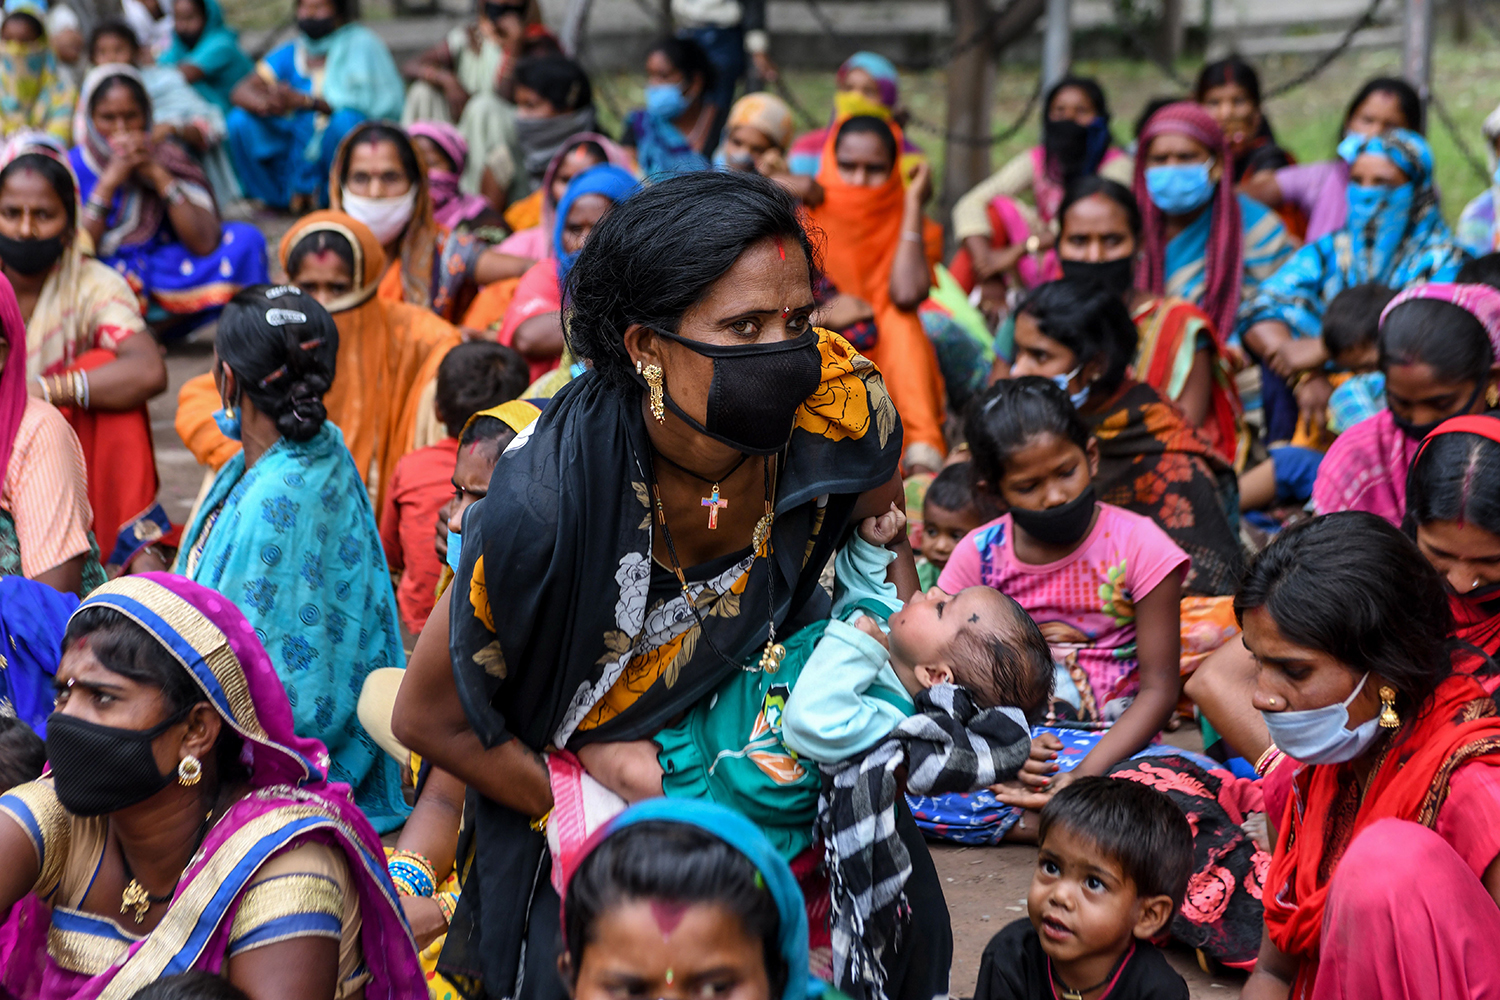 Migrant laborers and their families from Chhattisgarh, India, protest against the government to demand their return home June 3. NARINDER NANU/AFP via Getty Images